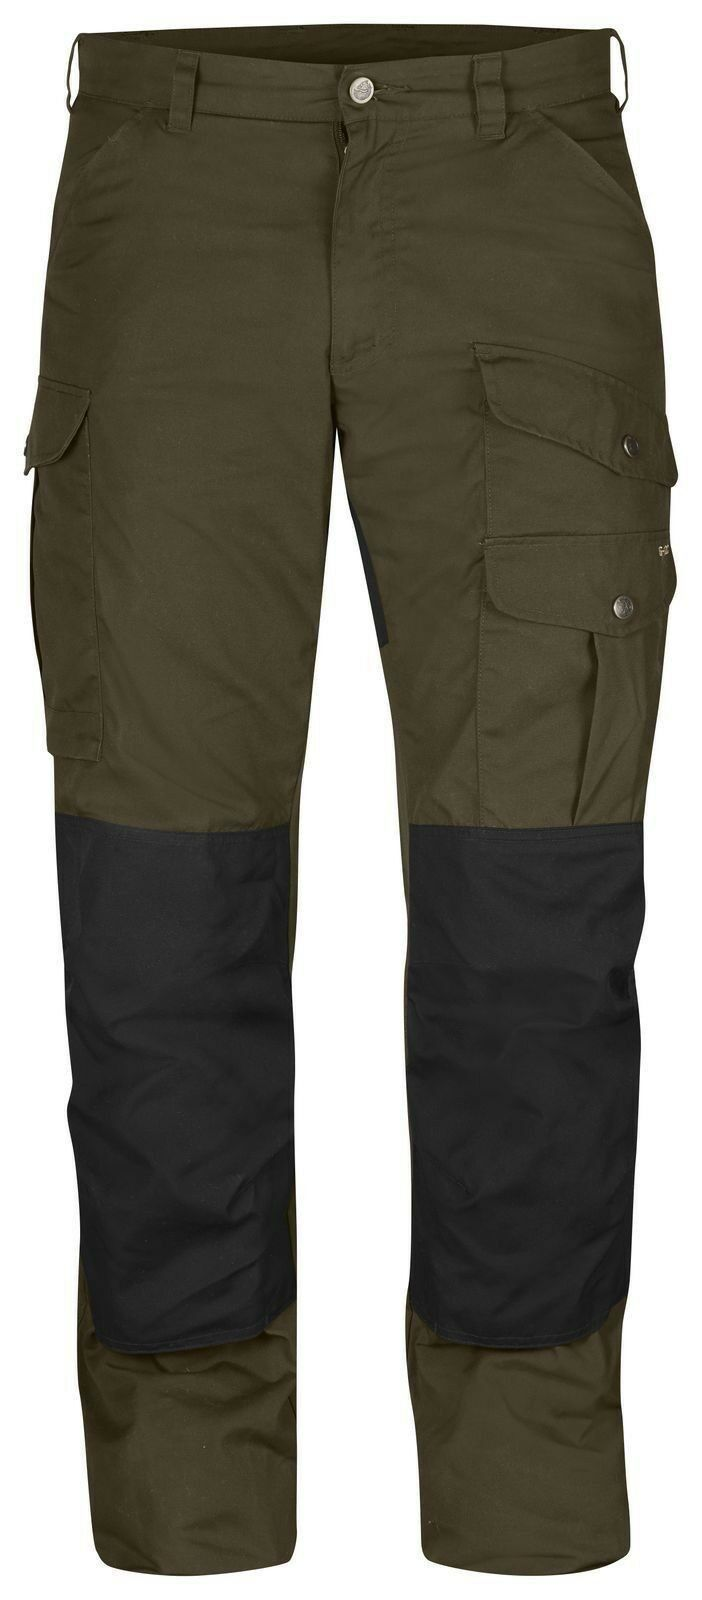 Western Räven Barents Pro Winter outdoorhose  Trekking Pants 81144 Size 48 Dark Olive  free shipping